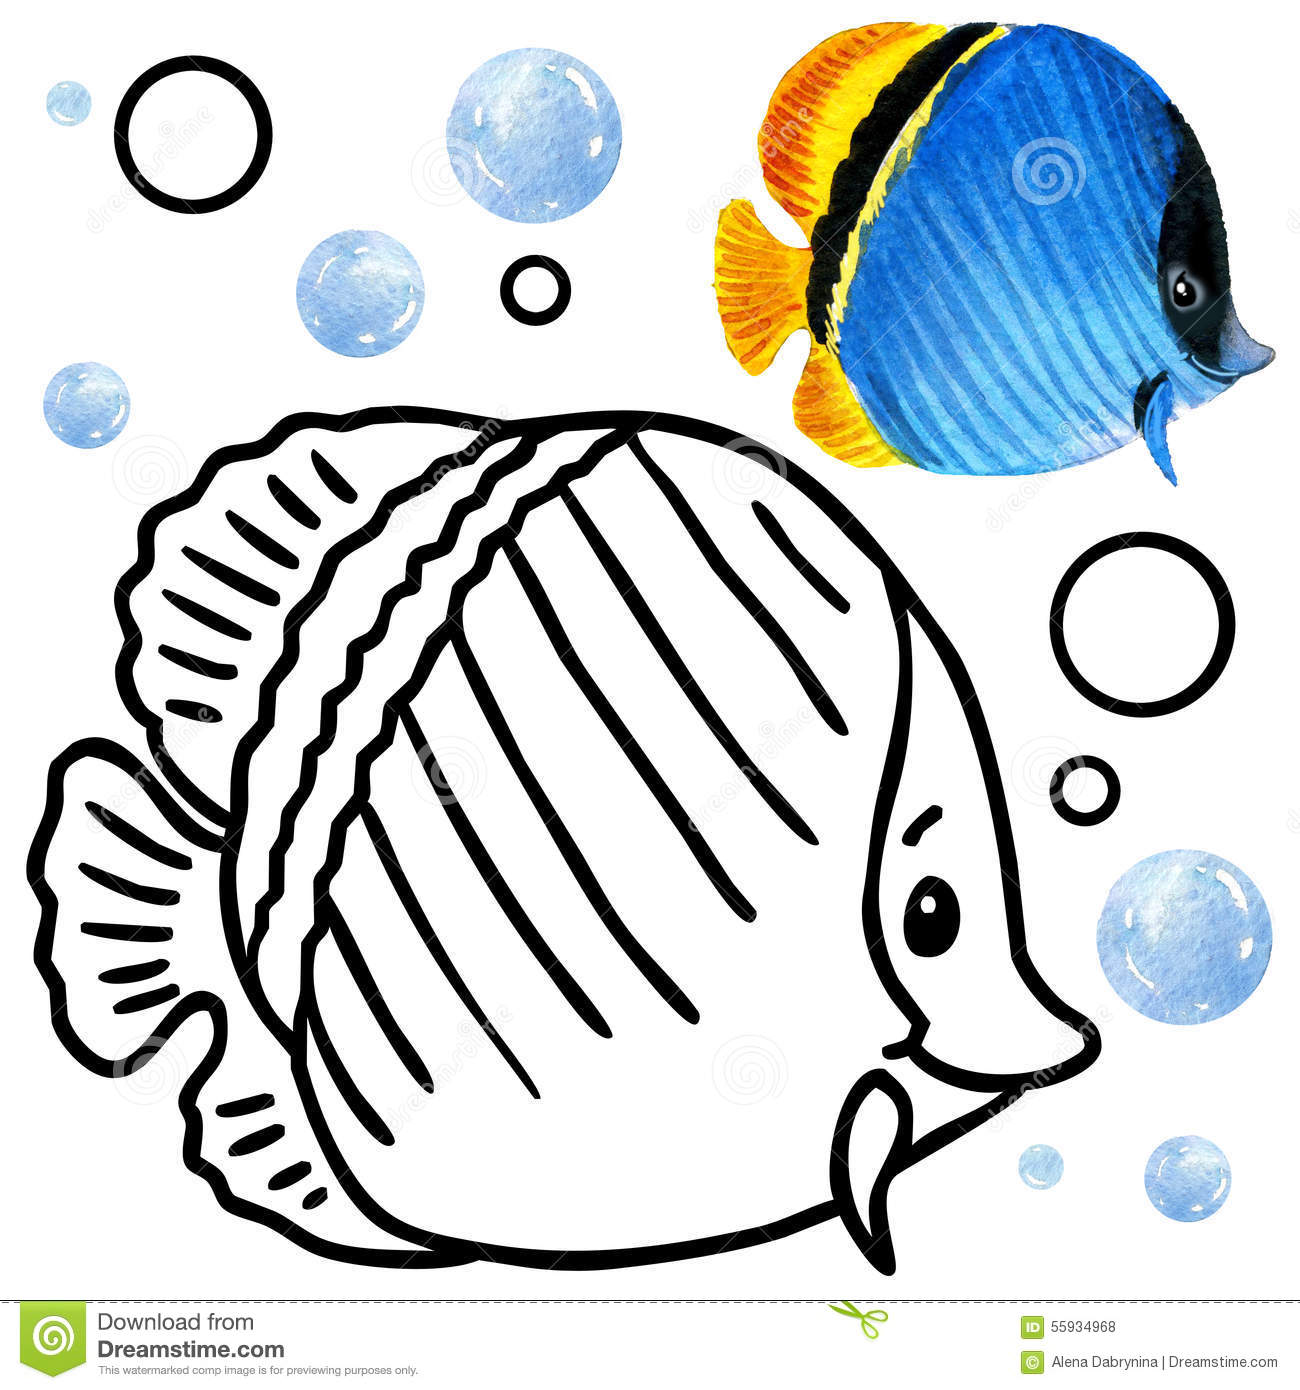 Coloring Book Coral Reef Fauna Cartoon Fish Illustration For Kid Entertainment Stock